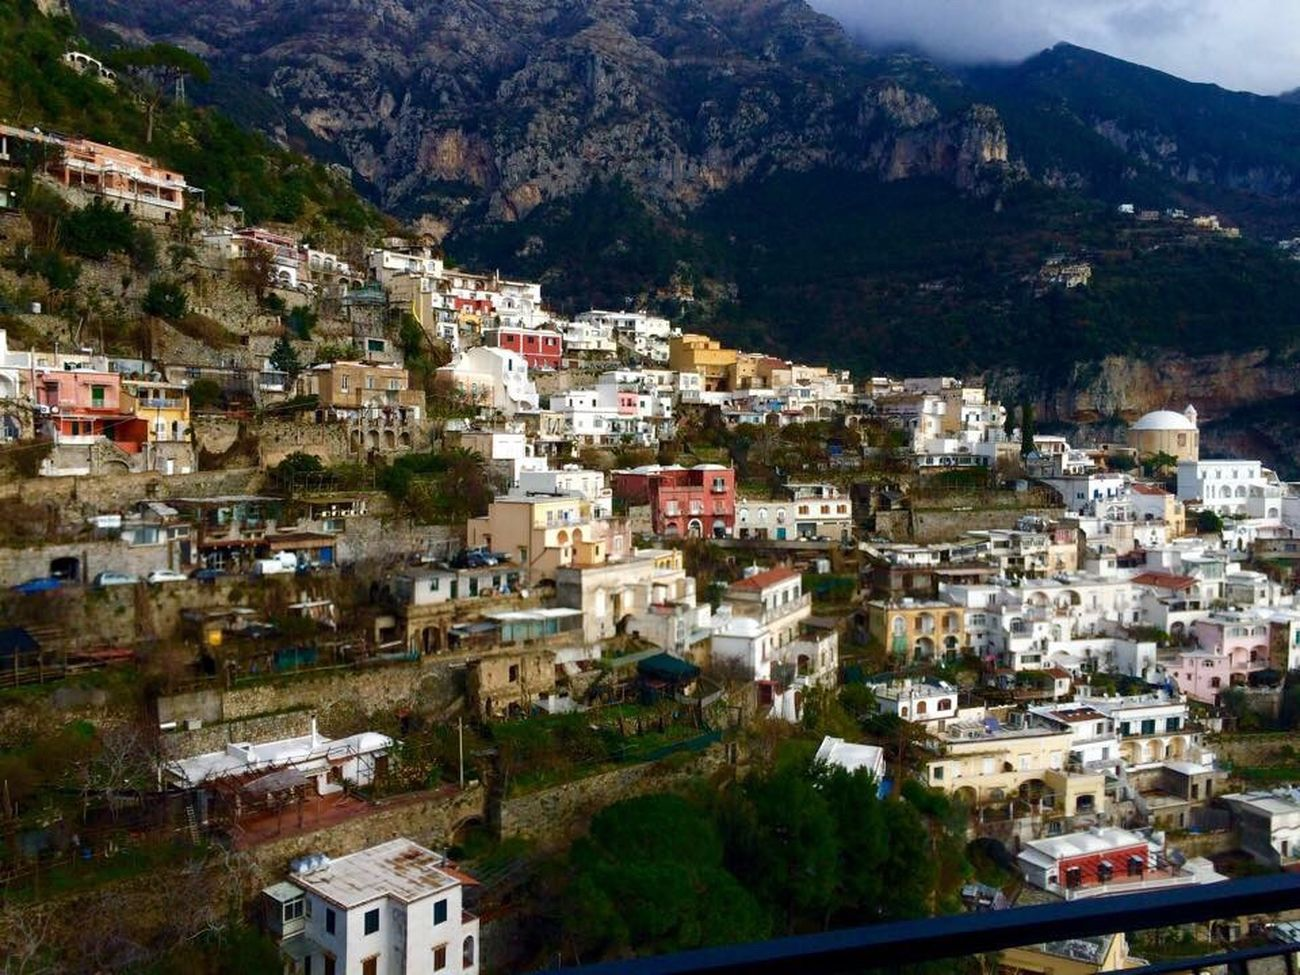 Amalfi Architecture Building Exterior Built Structure High Angle View Town Residential District Crowded Mountain House Outdoors Tree Residential Building Village Day Housing Settlement Sky Cityscape Community